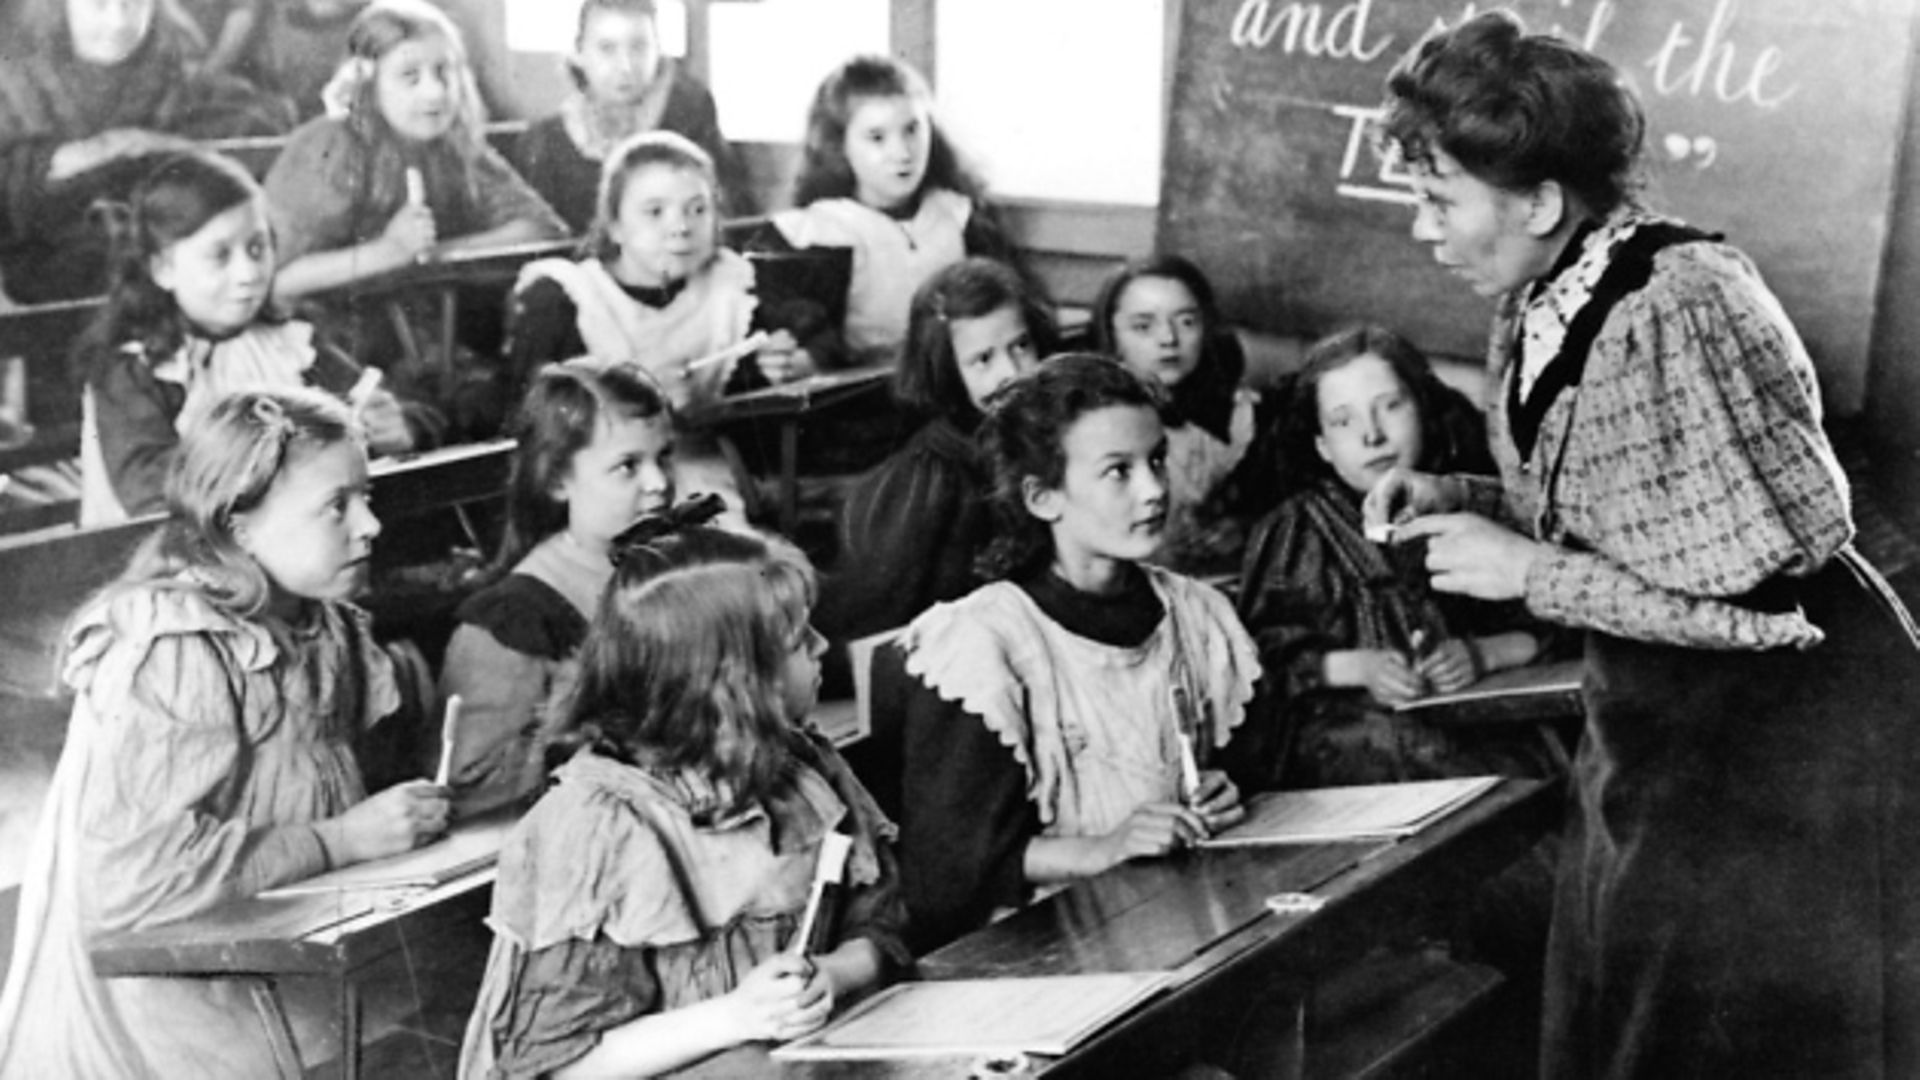 Teacher speaking to classroom of young girls. (Photo by Time Life Pictures/Mansell/The LIFE Picture Collection via Getty Images) - Credit: Time Life Pictures/Mansell/The LIFE Picture Collection via Getty Images